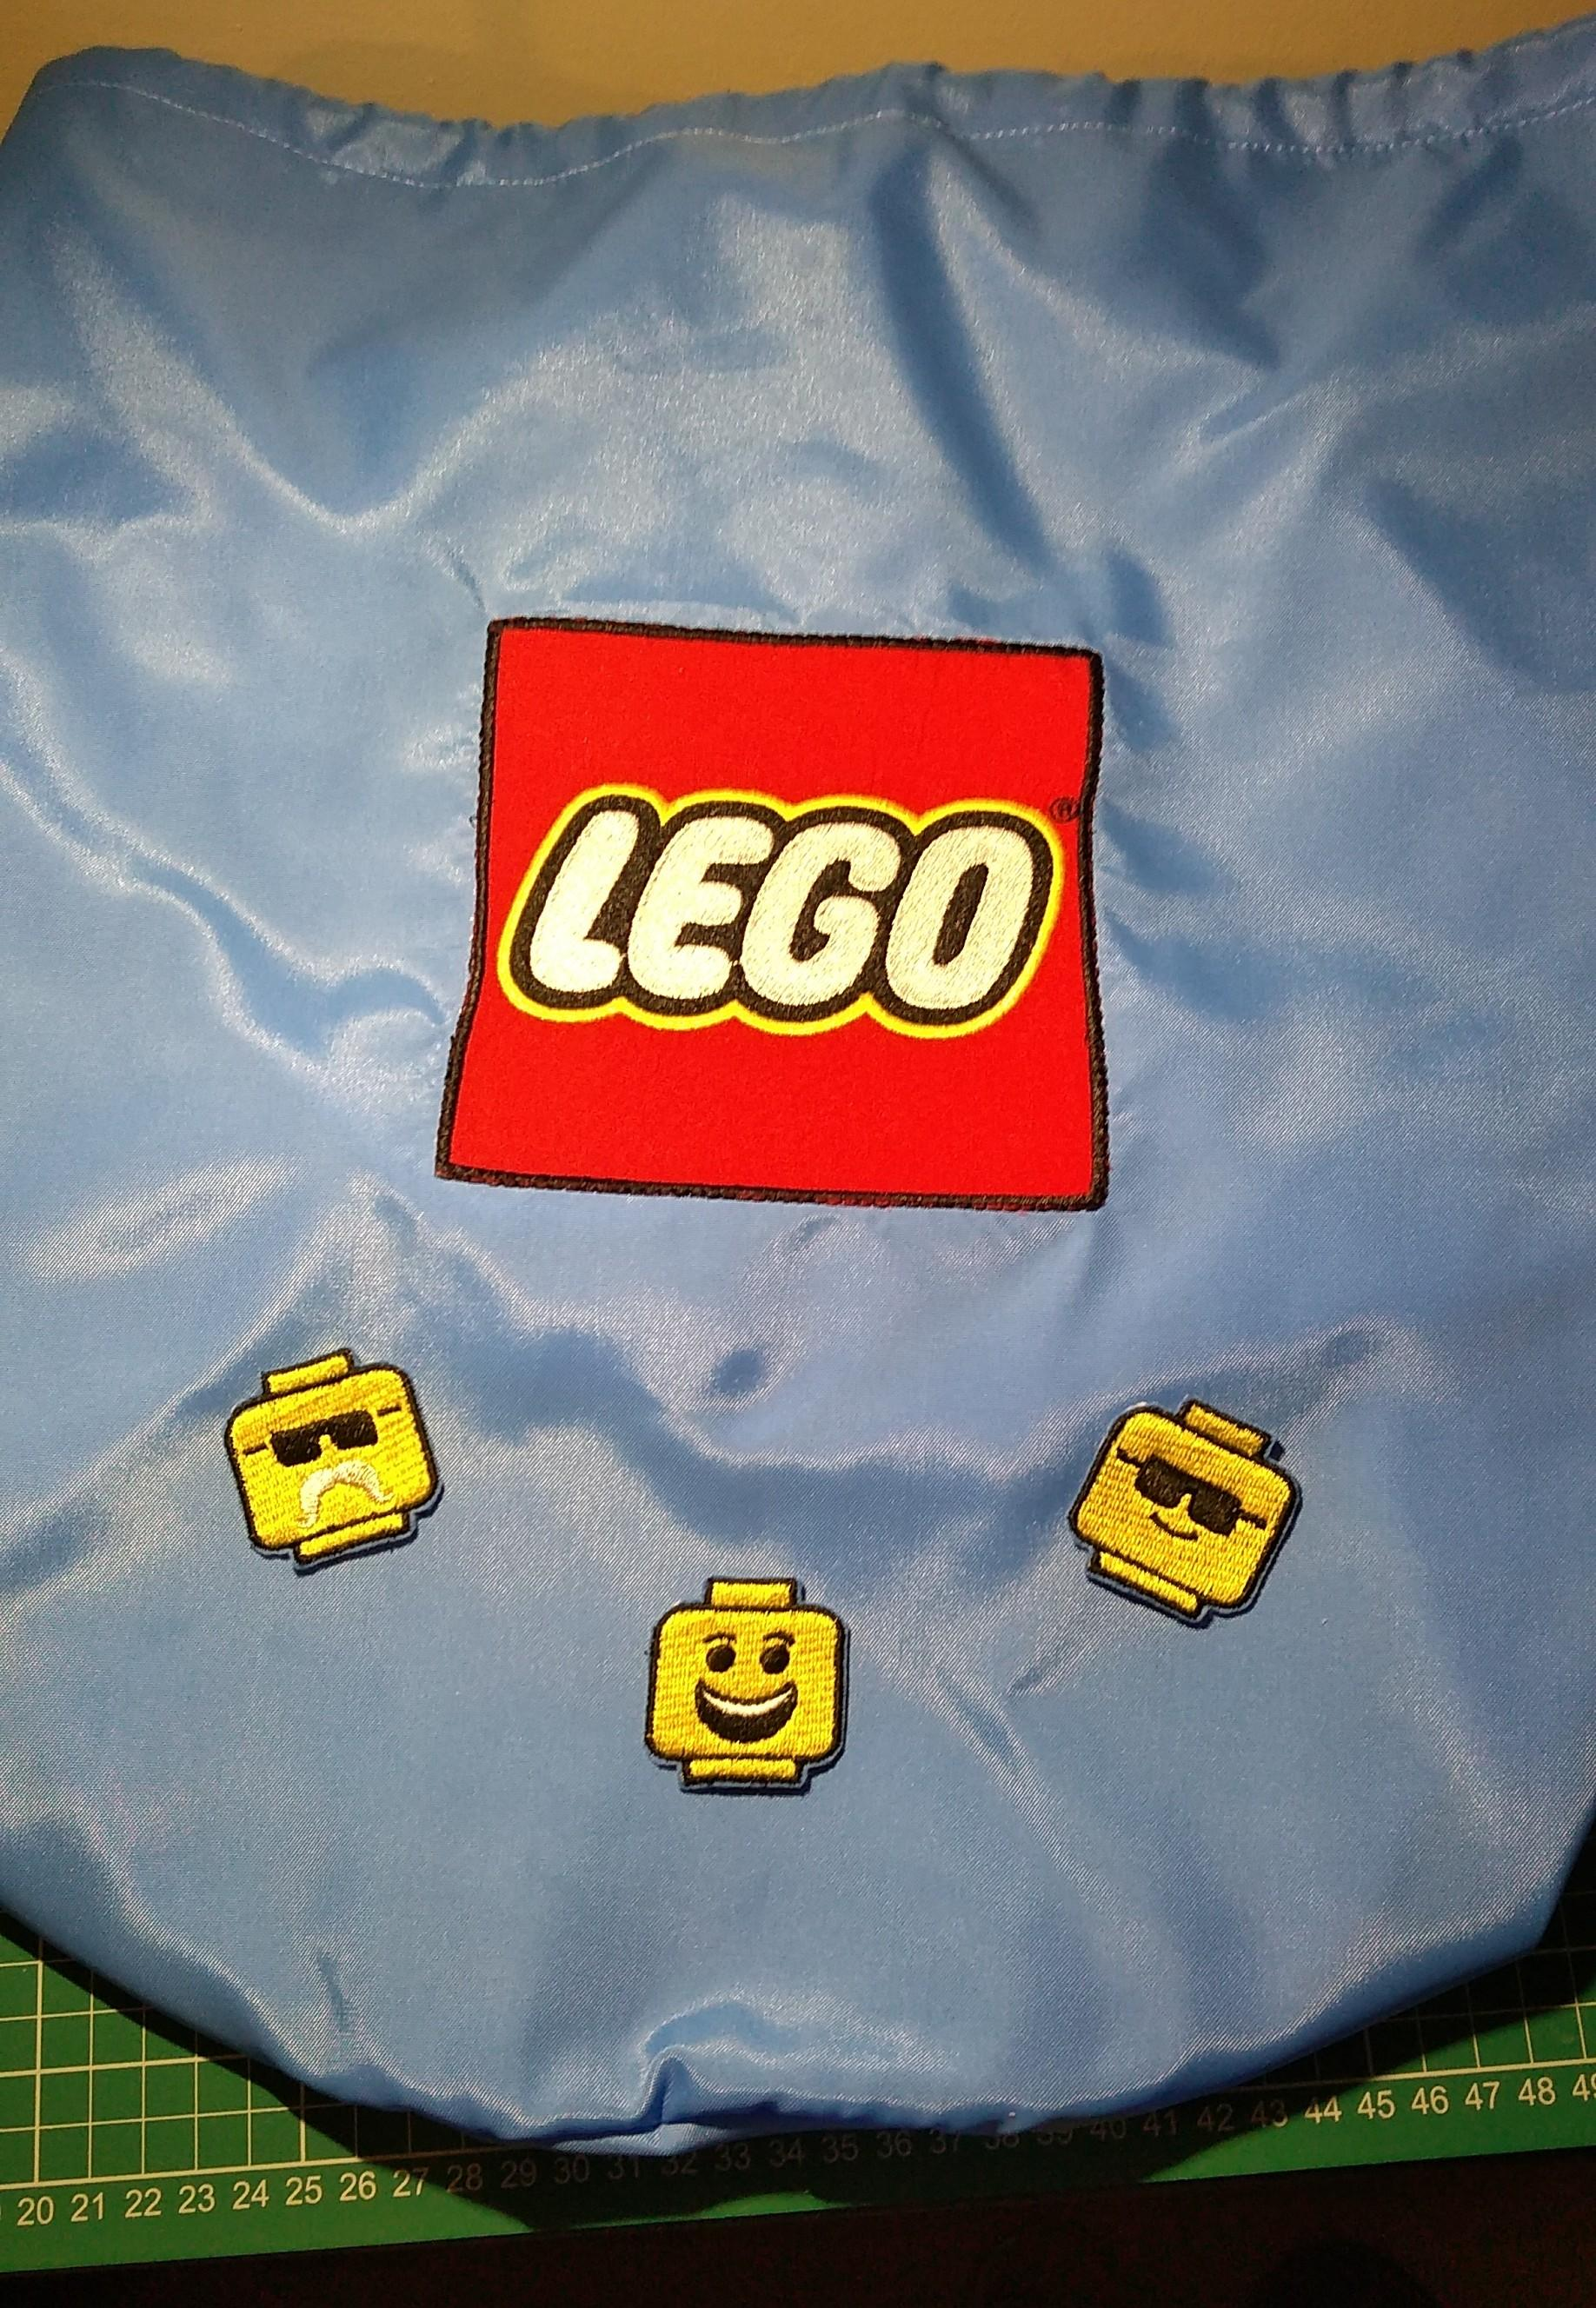 Lego toy bag with Lego faces